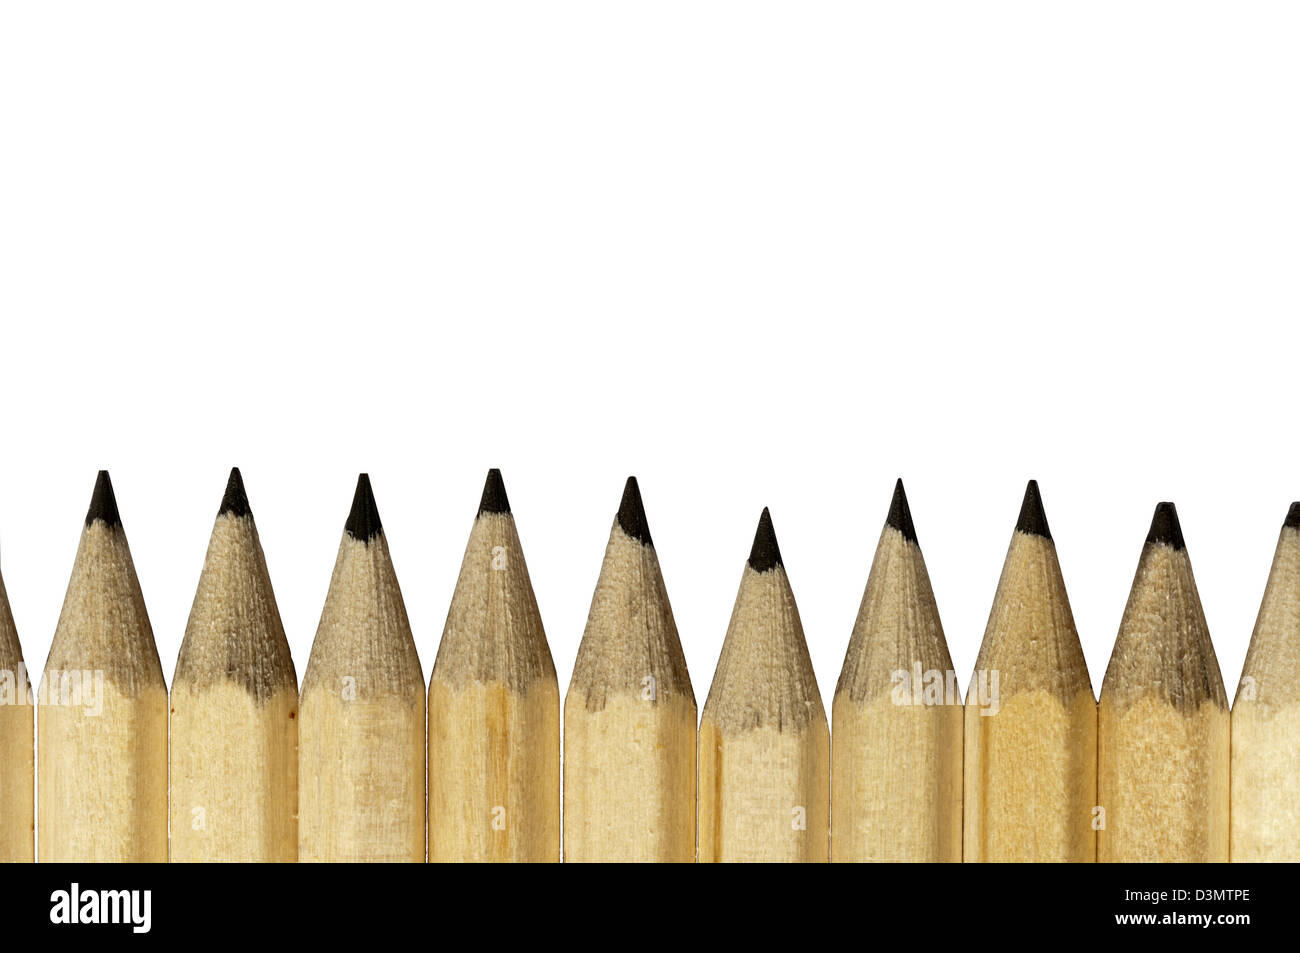 Freshly sharpened points on a line of lead pencils - Stock Image